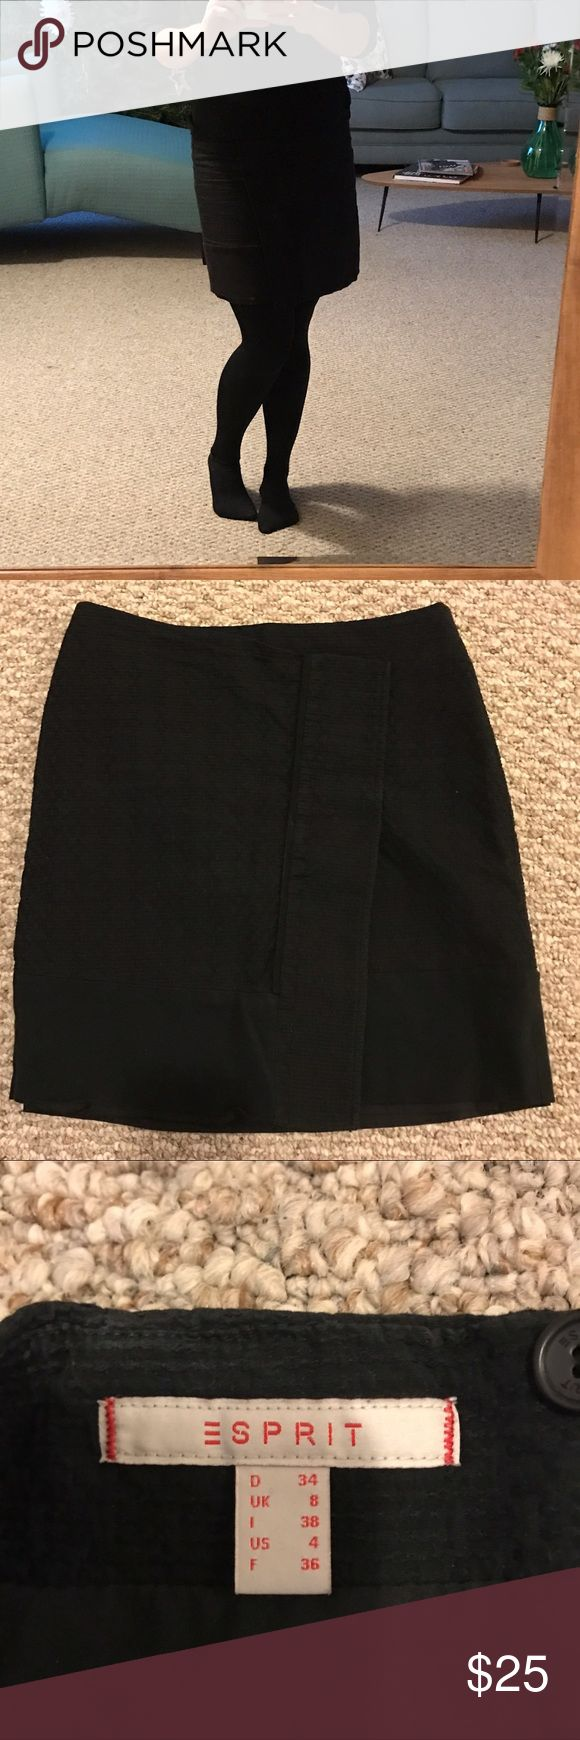 Esprit black skirt beautiful for any occasion This is a great skirt from esprit. Perfect for the office or a nice dinner. The size is actually a 0. I bought it in Germany and is says for 4, but I am in the US a 0 Esprit Skirts Mini